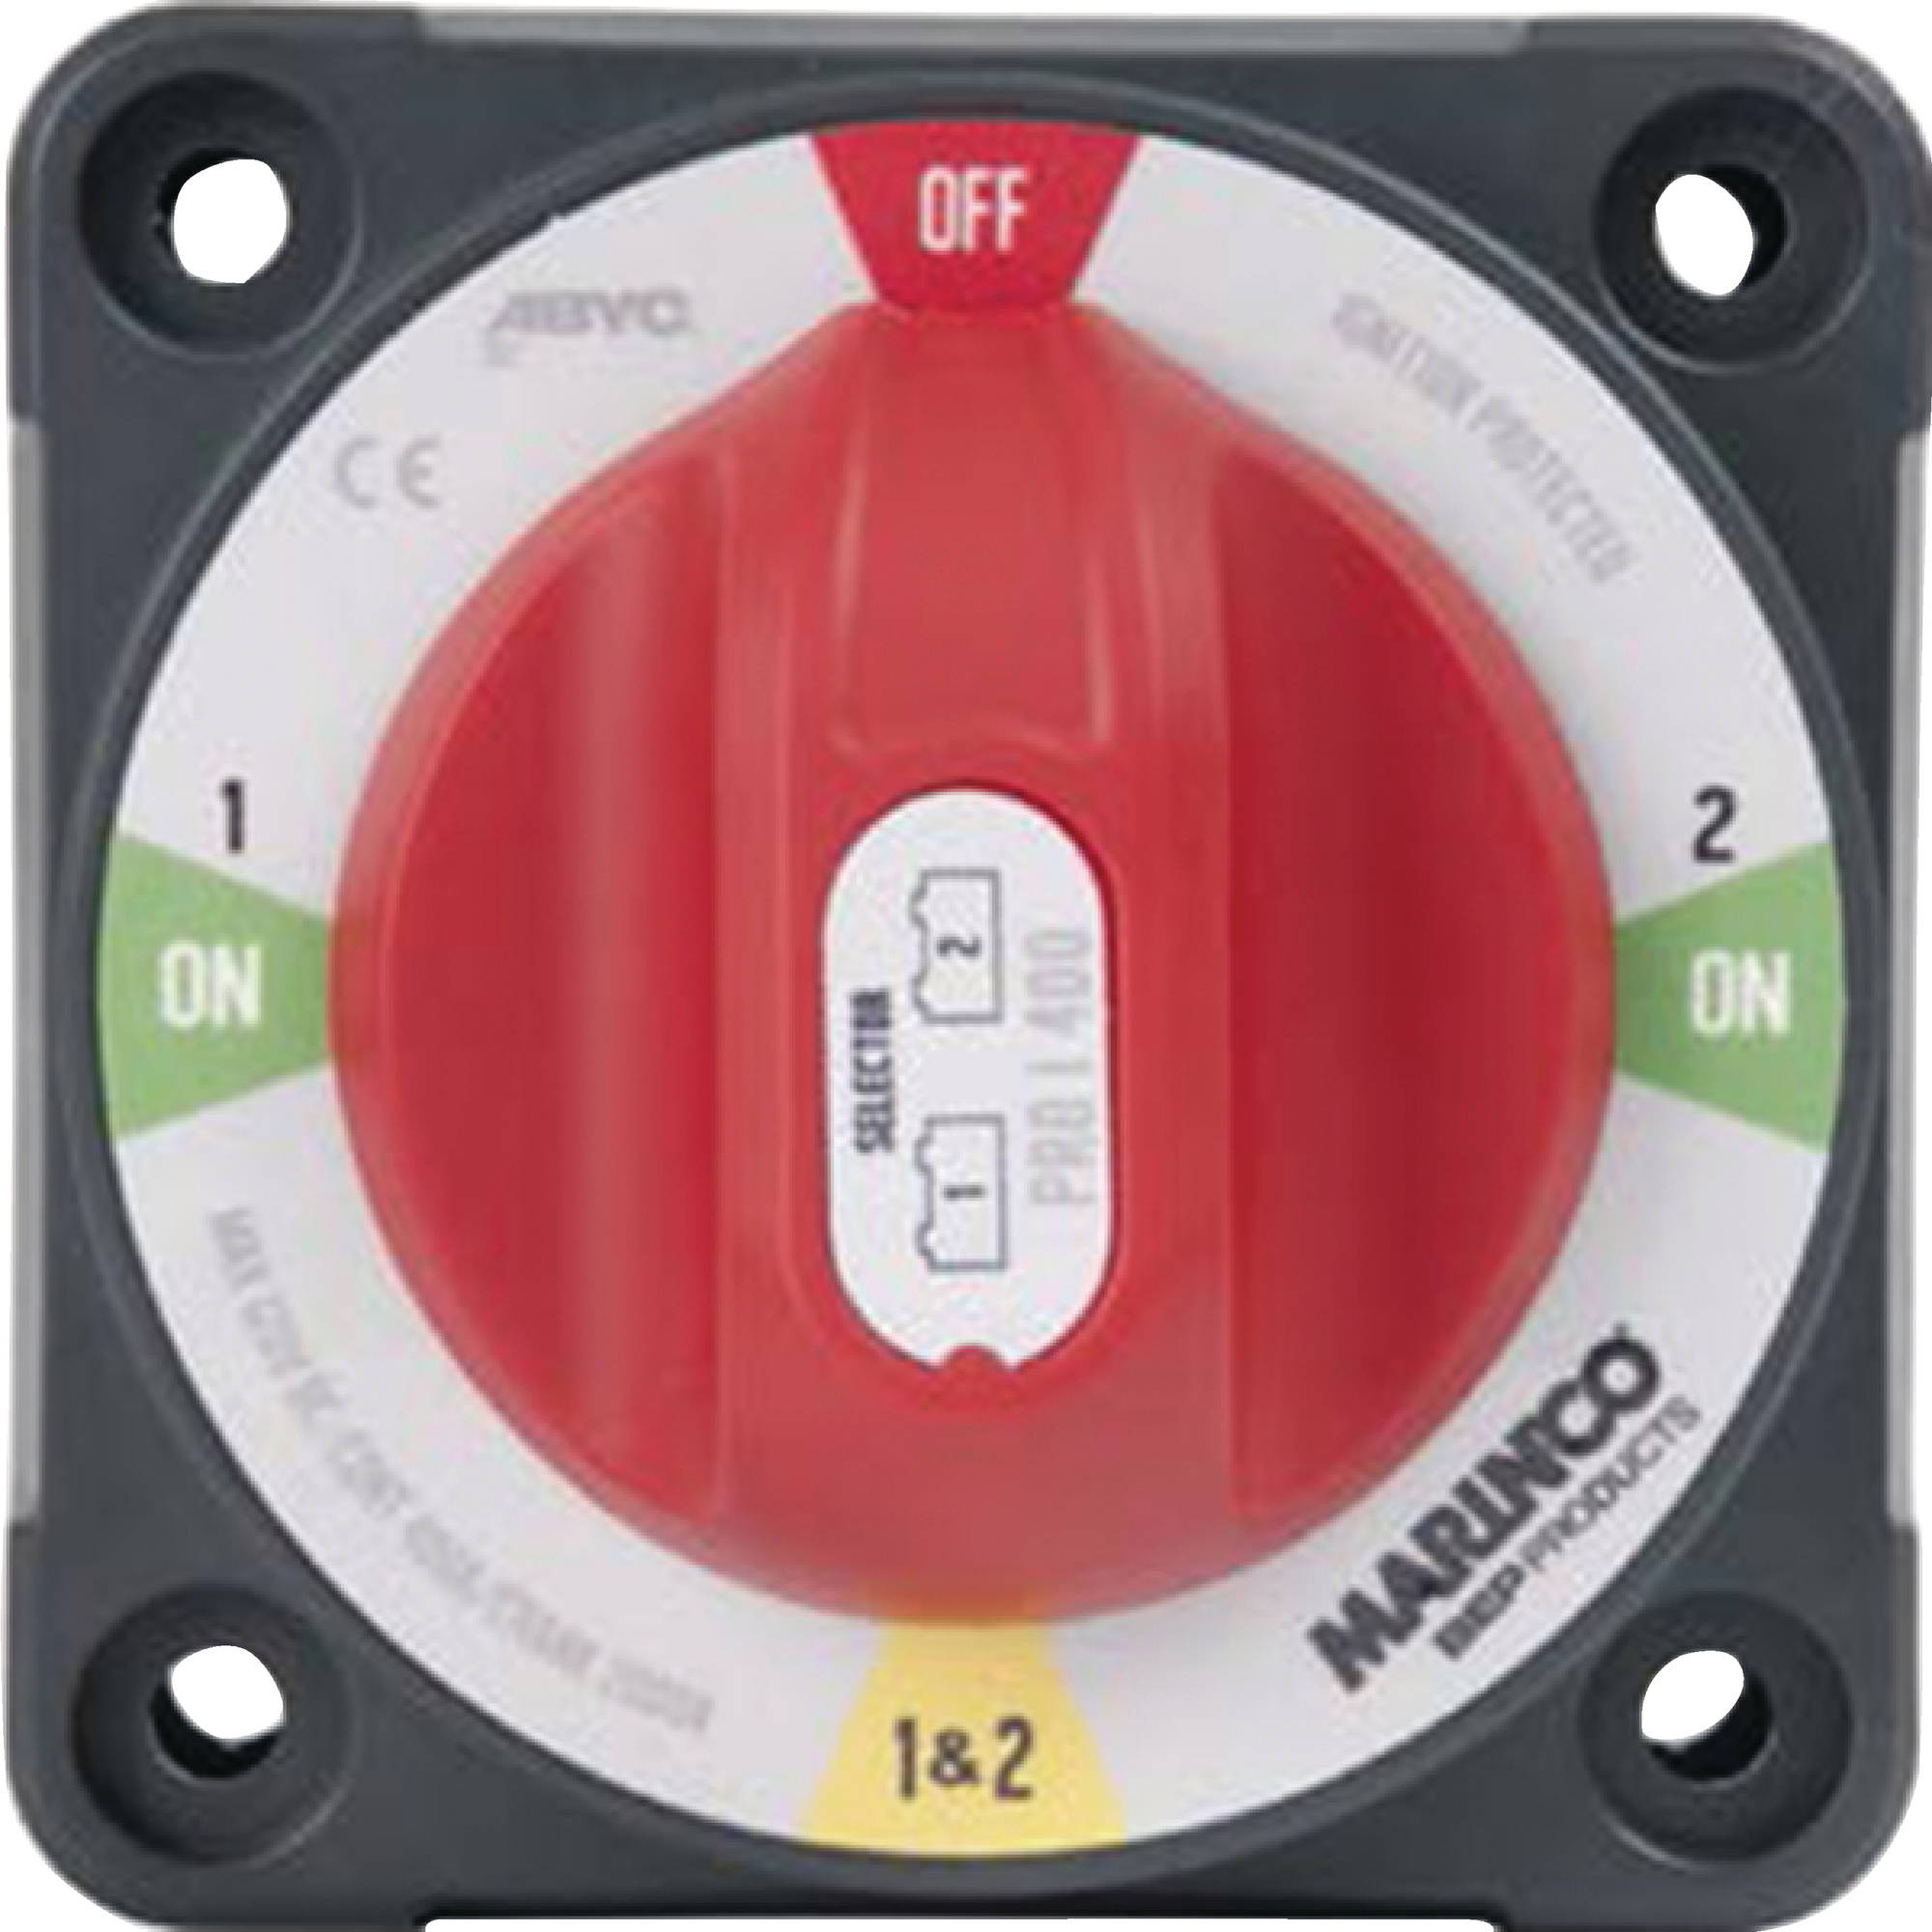 Marinco 771-SFD Pro Installer Battery Selector Switch with Field Disconnect (1-2-Both-Off)